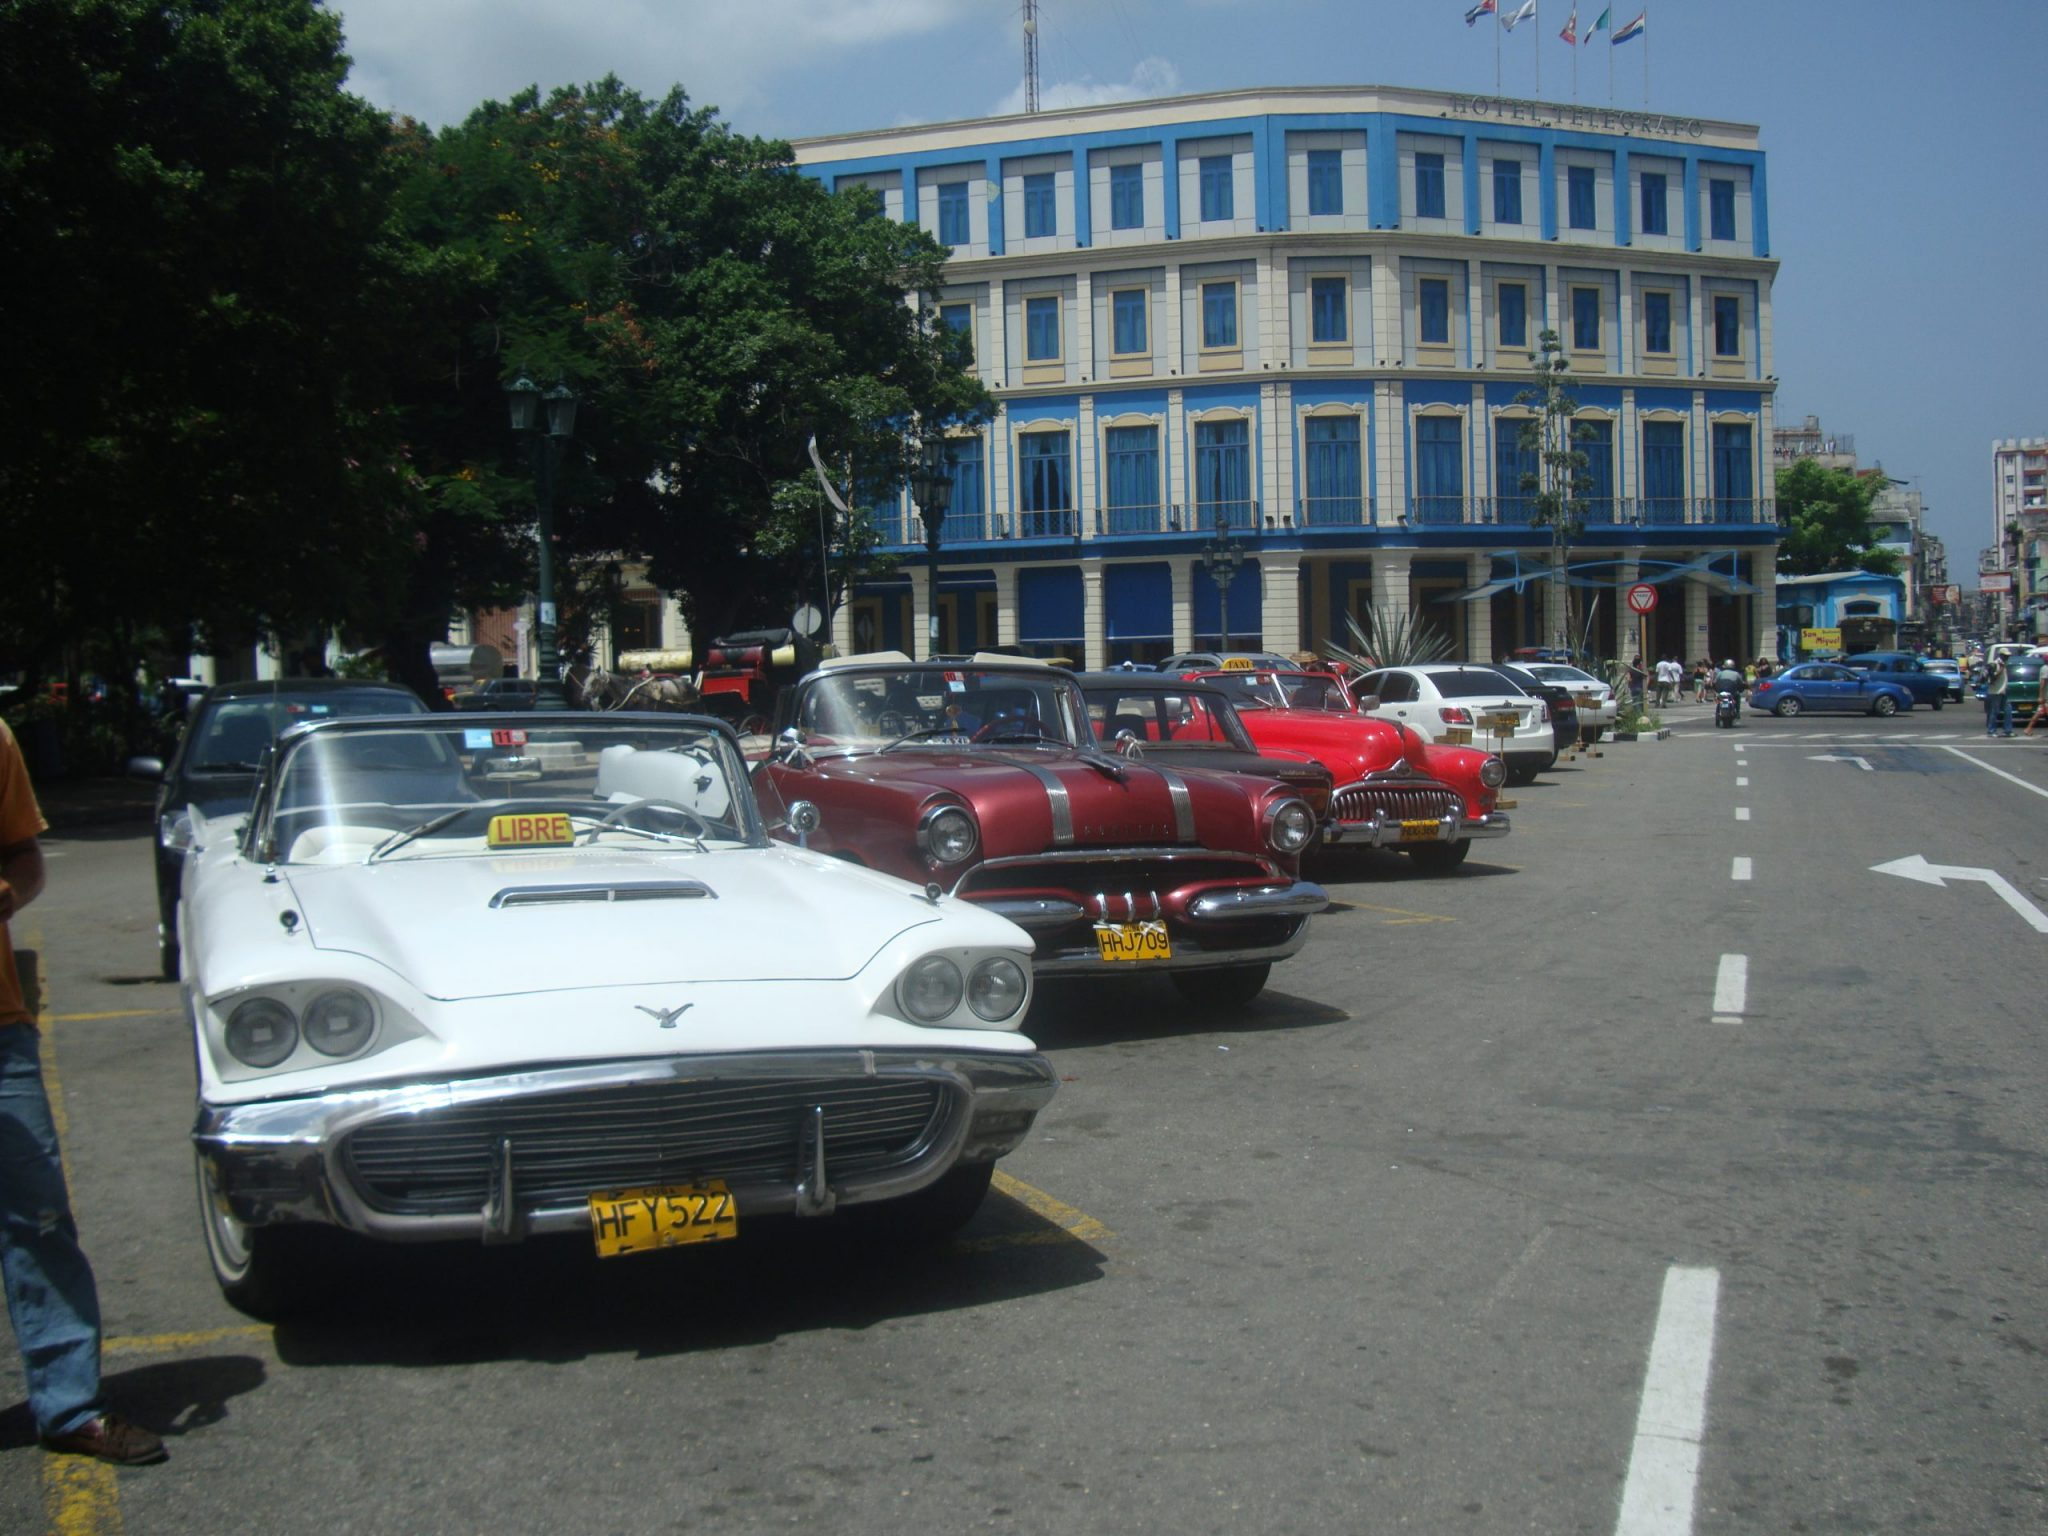 A photo of the old cars that drive around Havana, Cuba